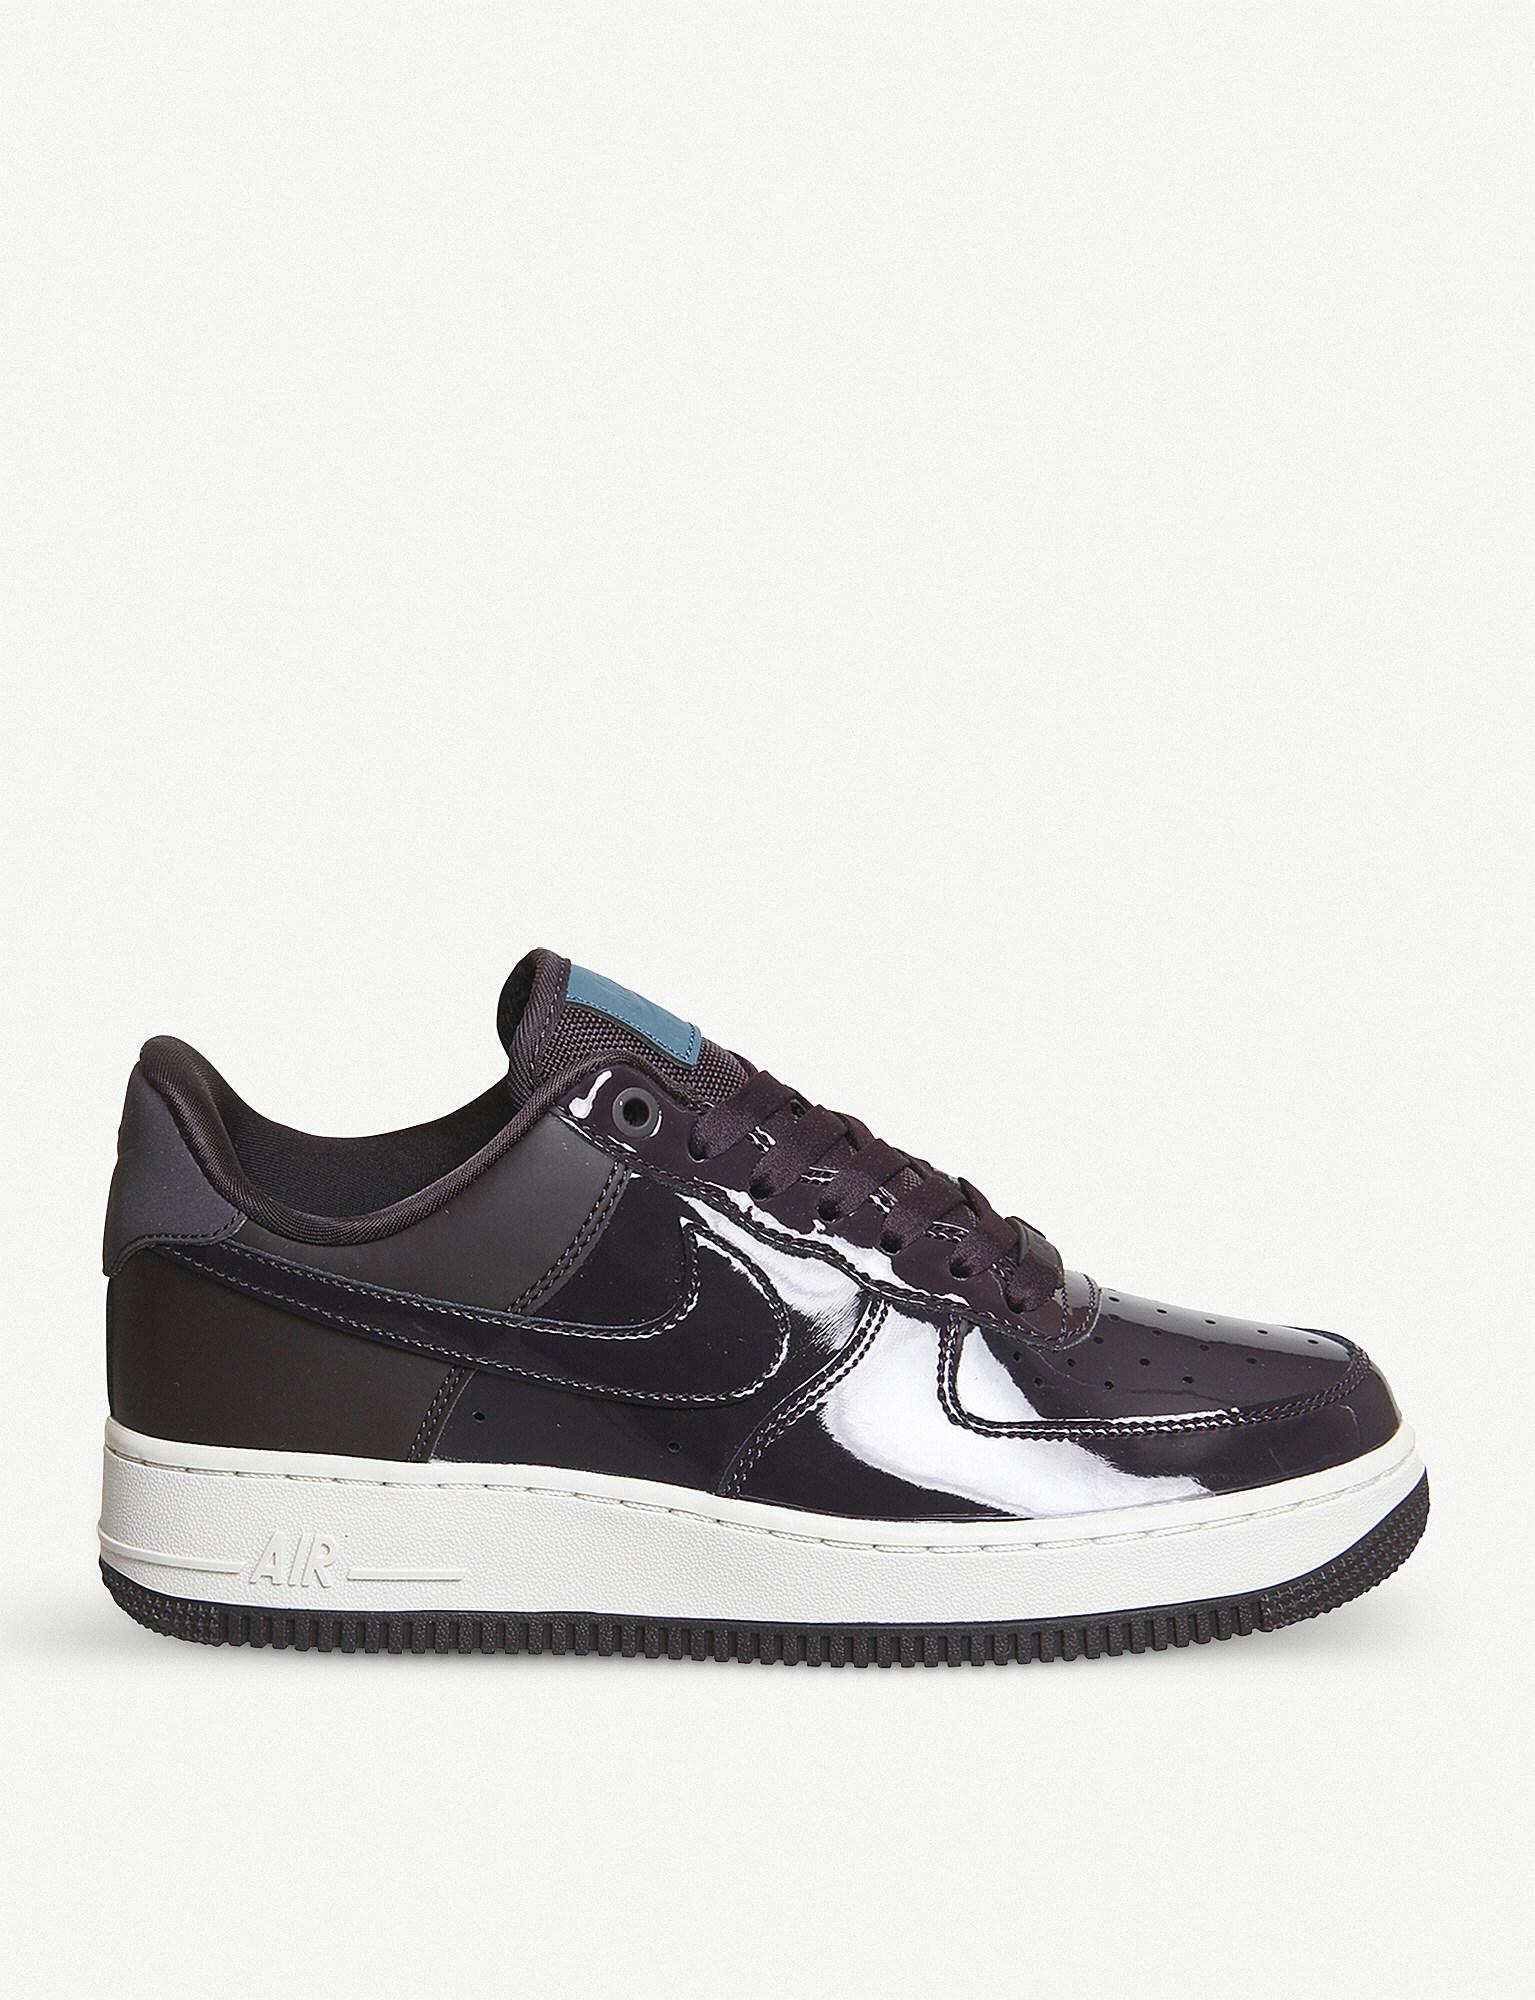 Nike. Women's Blue Air Force 1 07 Patent Leather Trainers